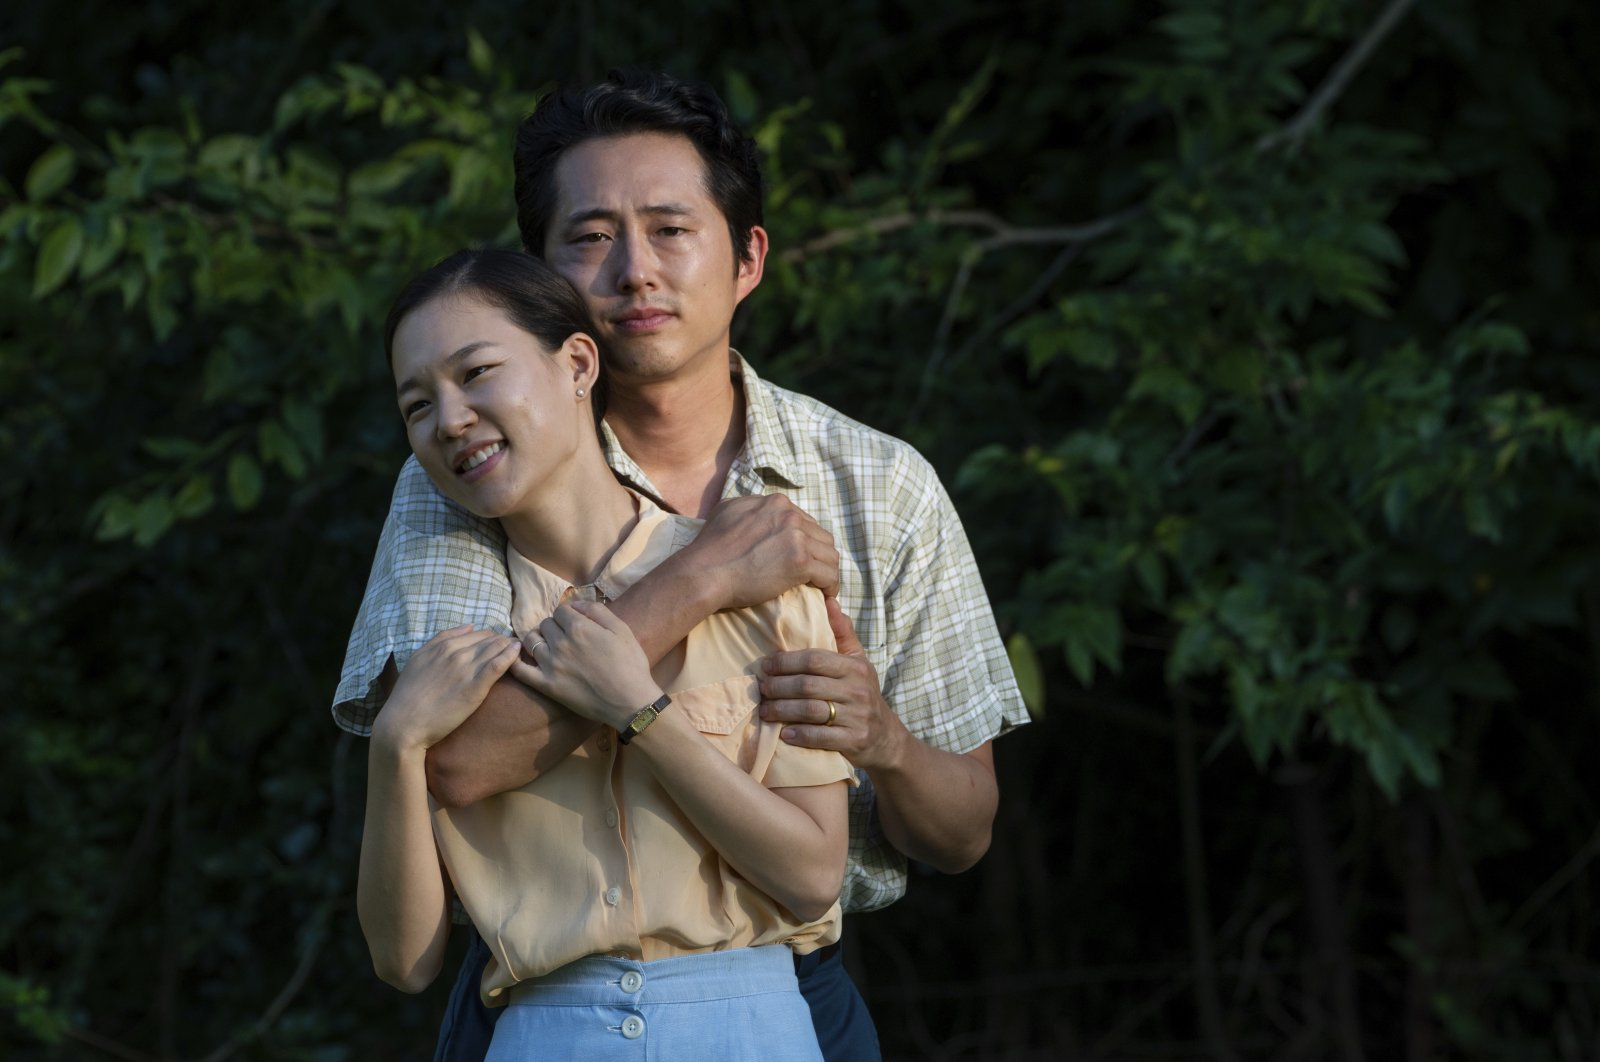 """A still image from the film """"Minari"""" shows Yeri Han, foreground, and Steven Yeun. (AP)"""